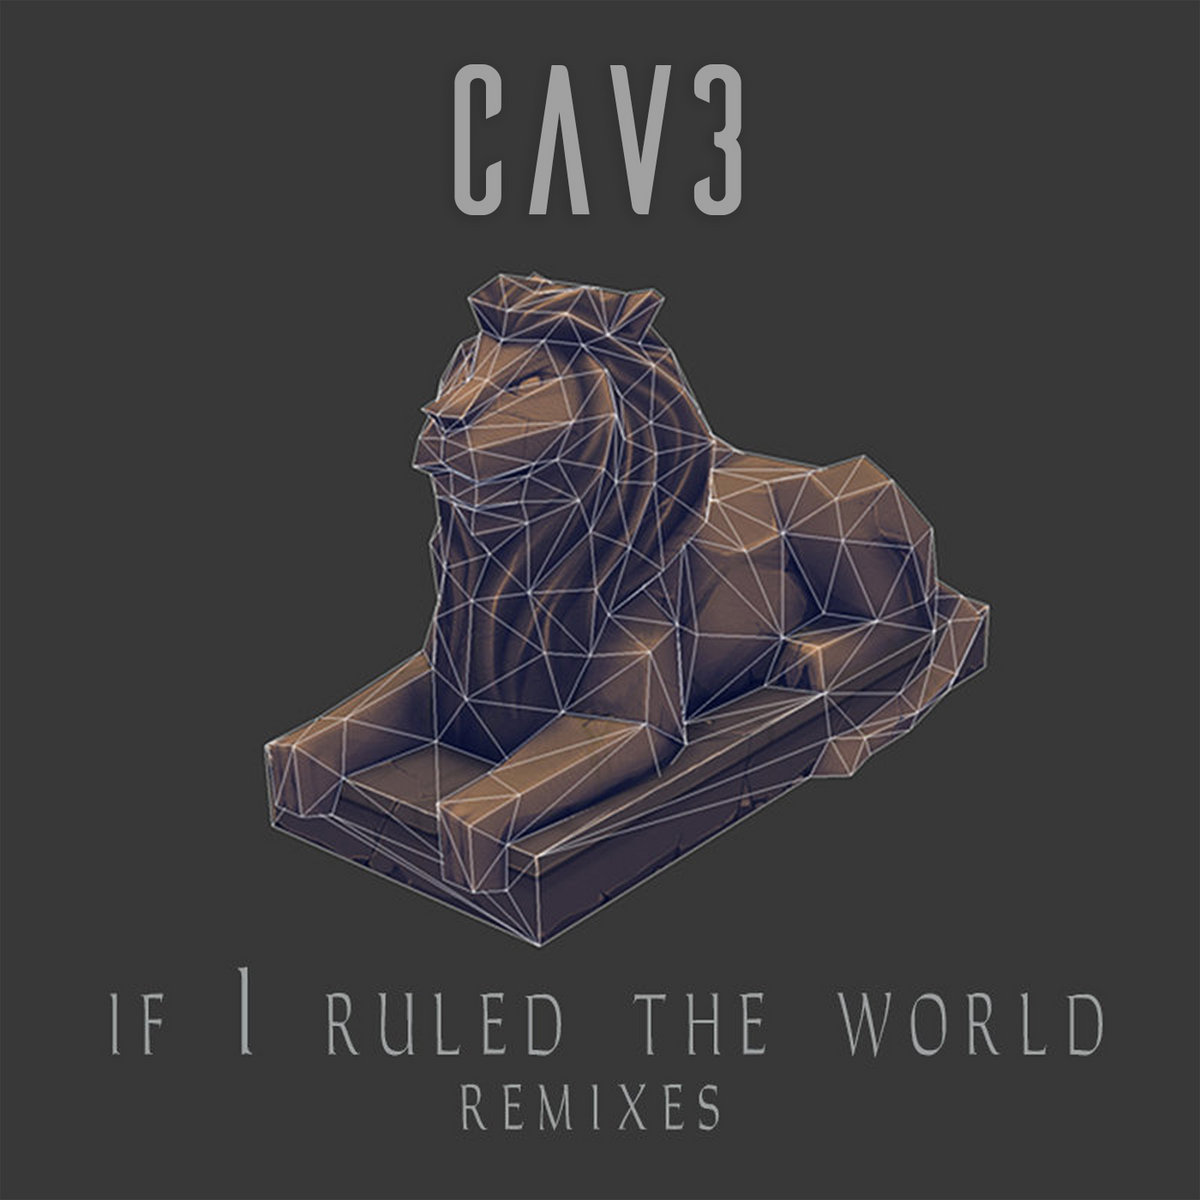 what would i do if i ruled the world